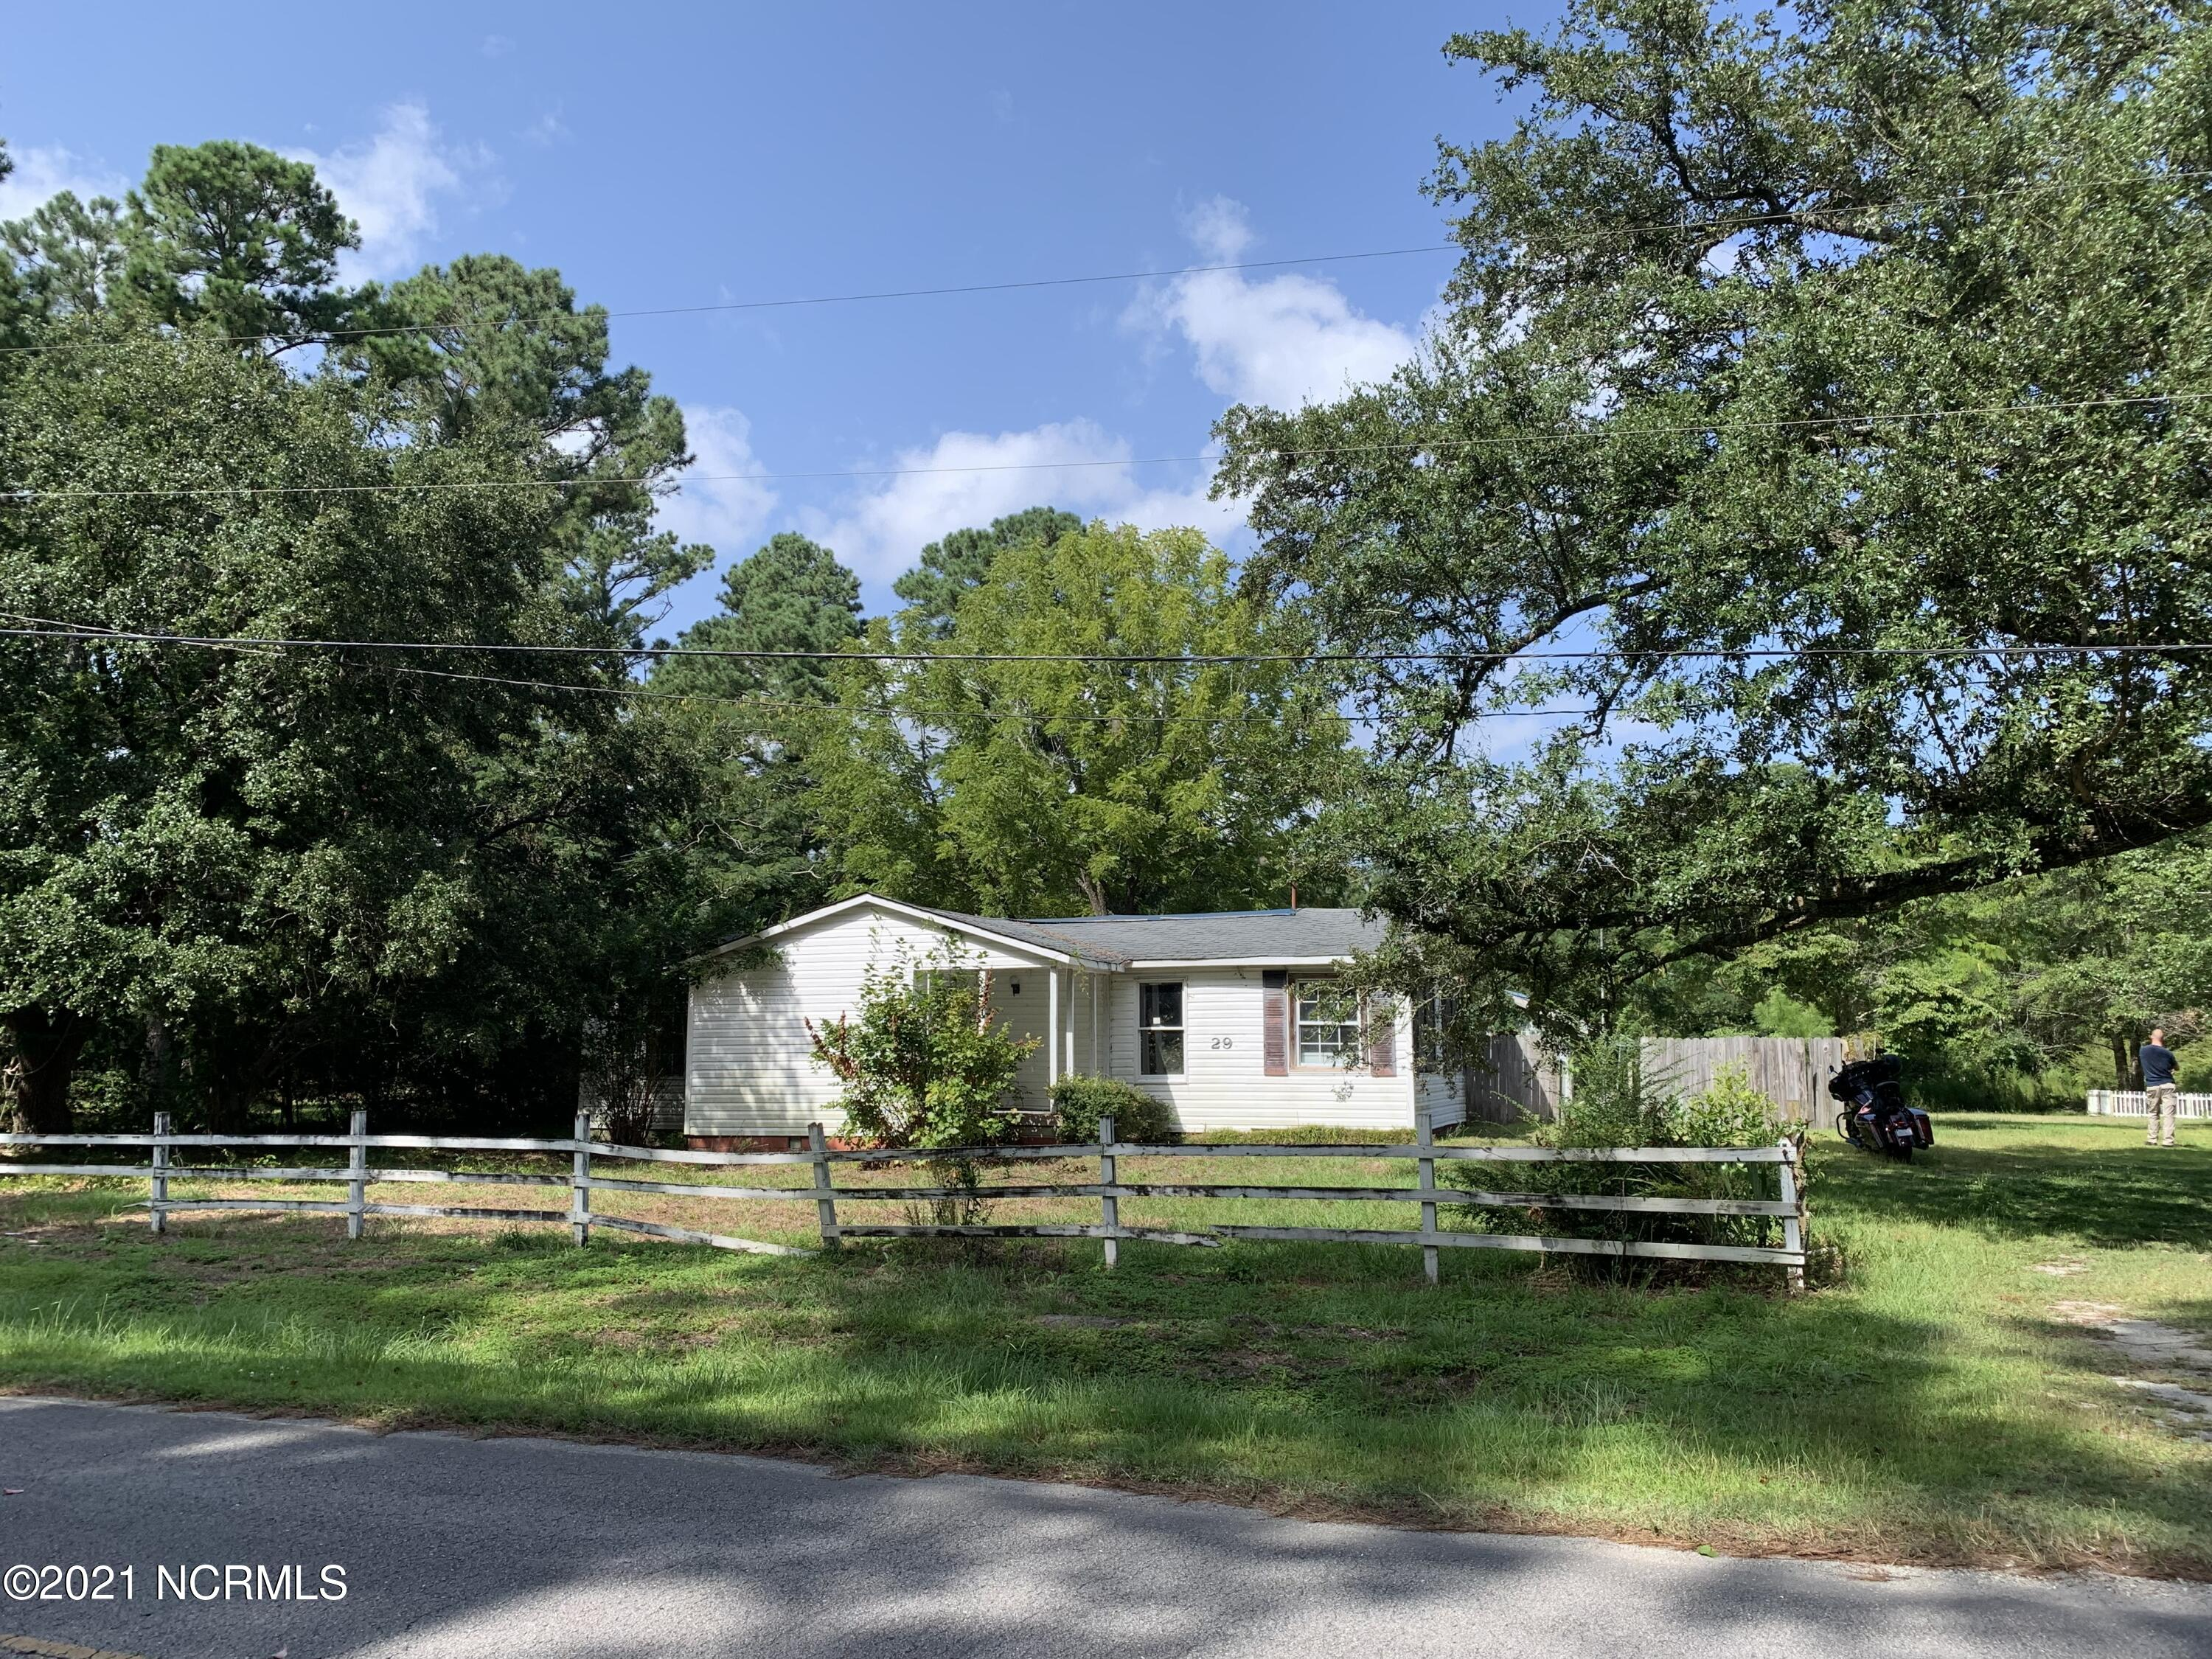 INVESTOR SPECIAL! Home is being sold AS IS, Cash ONLY.  This 2bed, 1 bath home is located in half an acre lot with the storage shed, enjoy the convenient access to Camp Lejuene, Beaches and more.  Home is very distressed and priced accordingly. Access at your own risk.